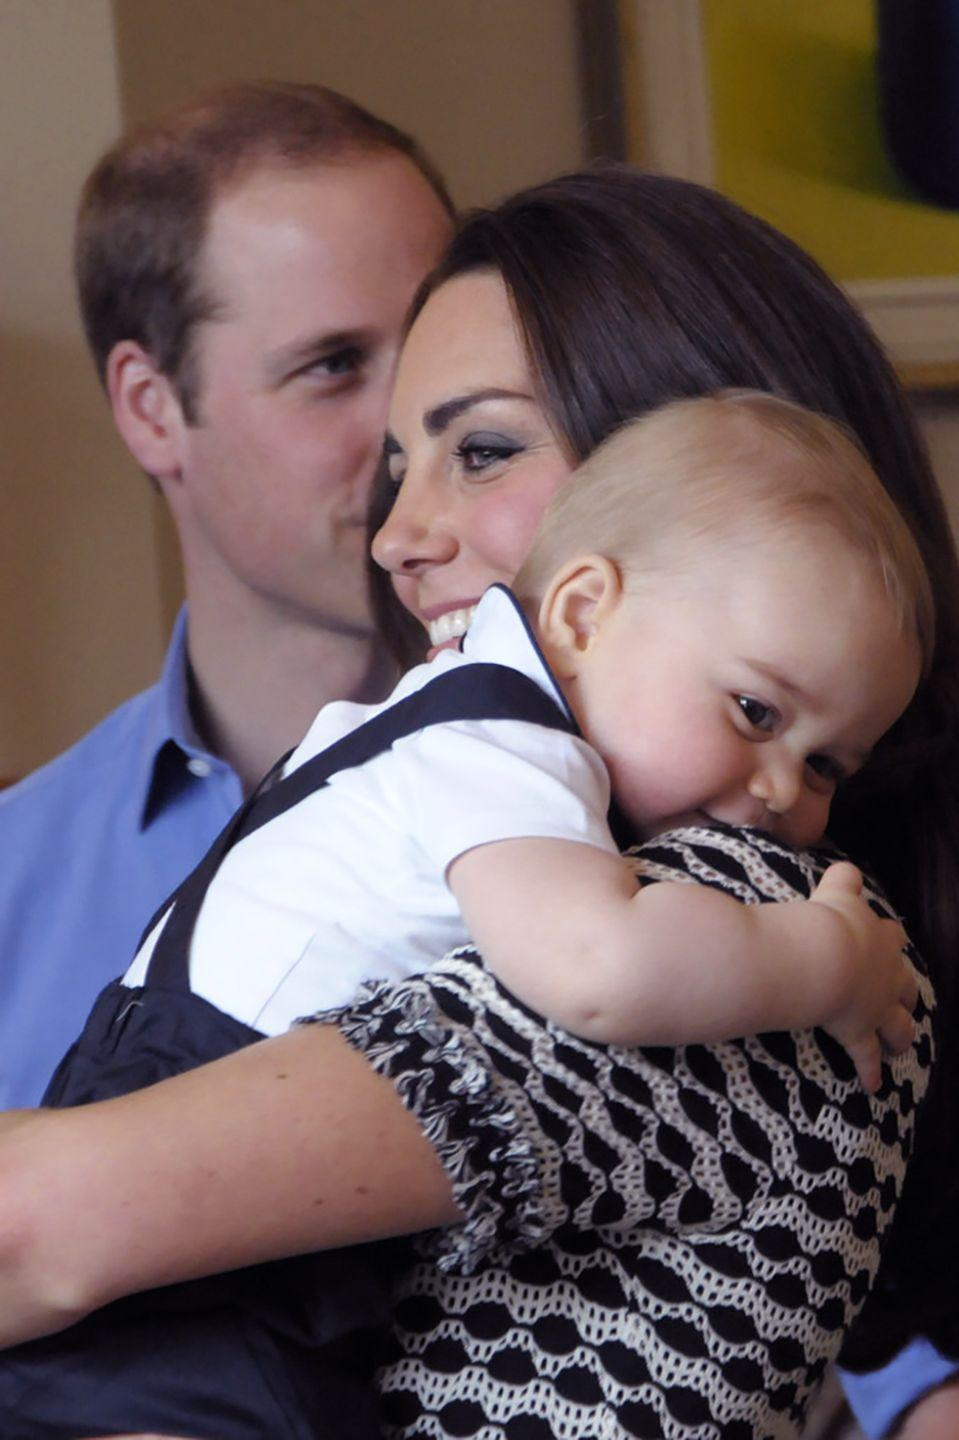 """<p>Prince George's full name is George Alexander Lewis and Princess Charlotte's full name is Charlotte Elizabeth Diana. Prince William's full name is William Arthur Philip Louis<span class=""""redactor-invisible-space"""">.</span></p>"""